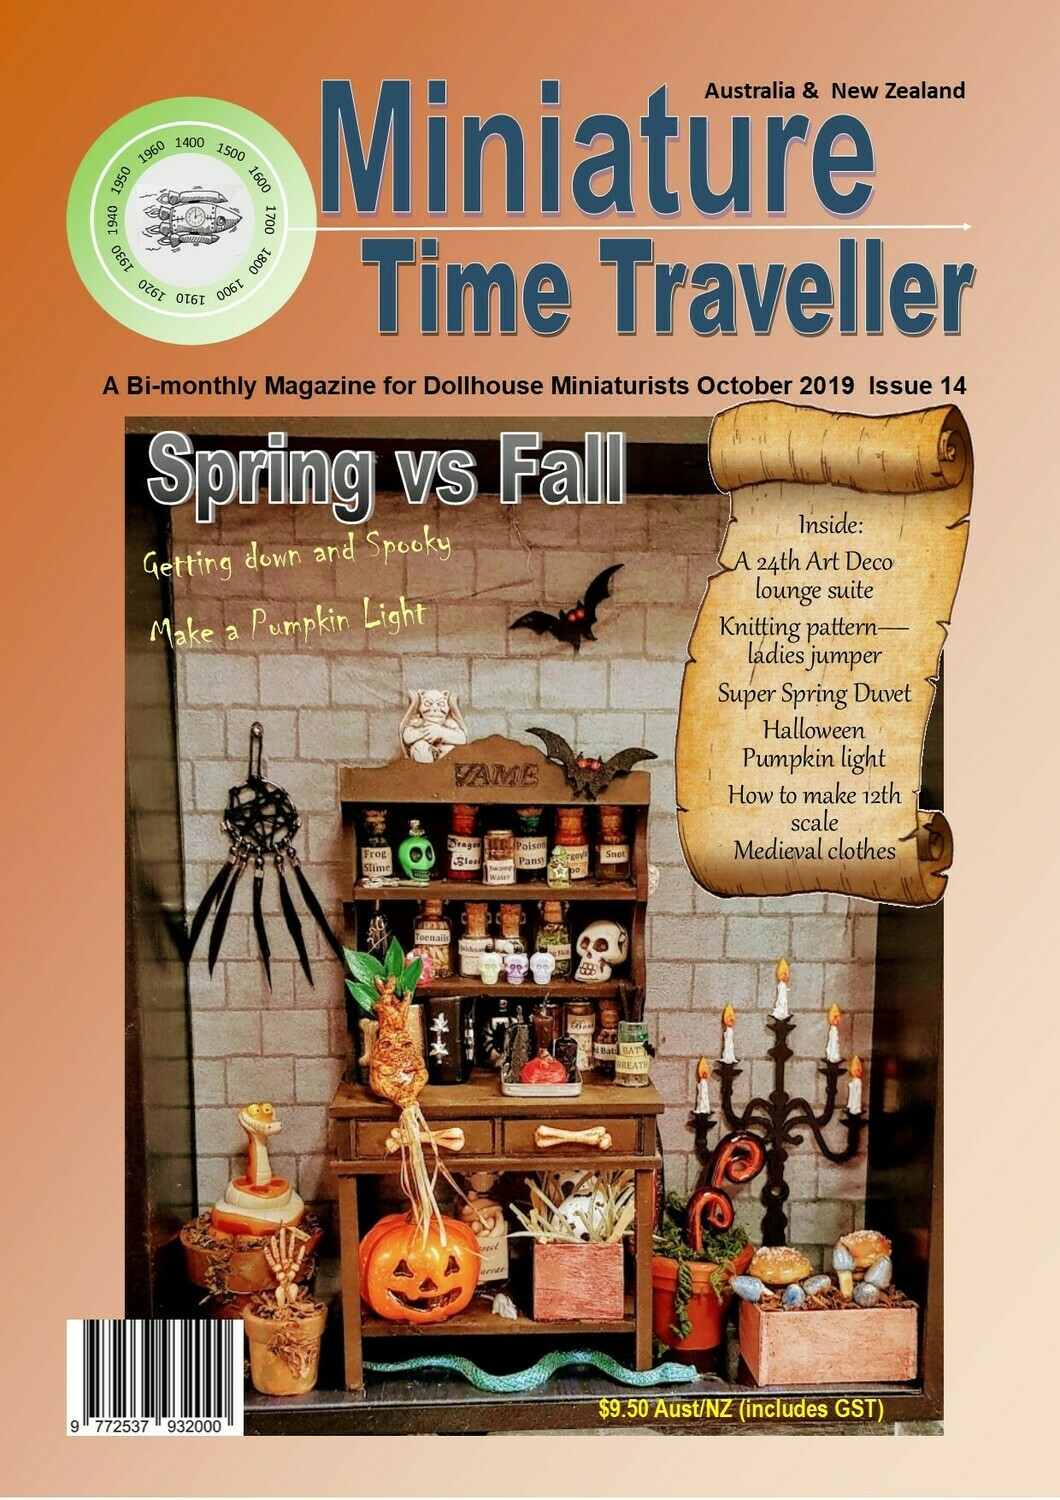 October 2019 - Miniature Time Traveller Magazine - October 2019 - Single Issue only. Postage extra.